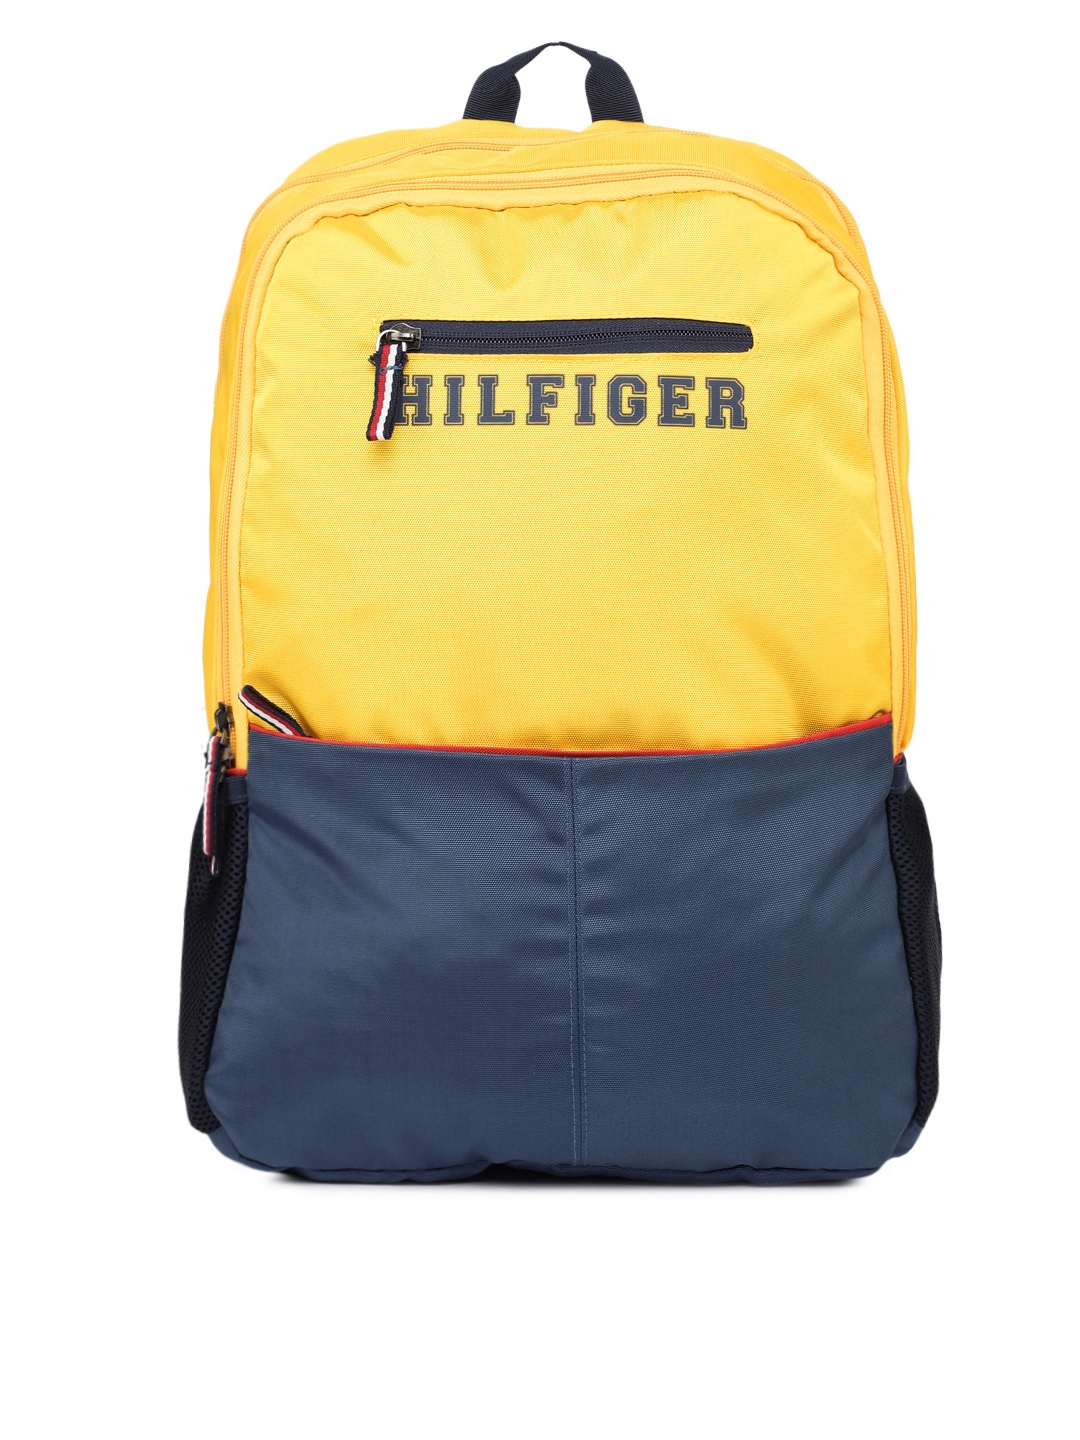 055ae2958ea Buy Tommy Hilfiger Unisex Yellow & Blue Colourblocked Backpack ...